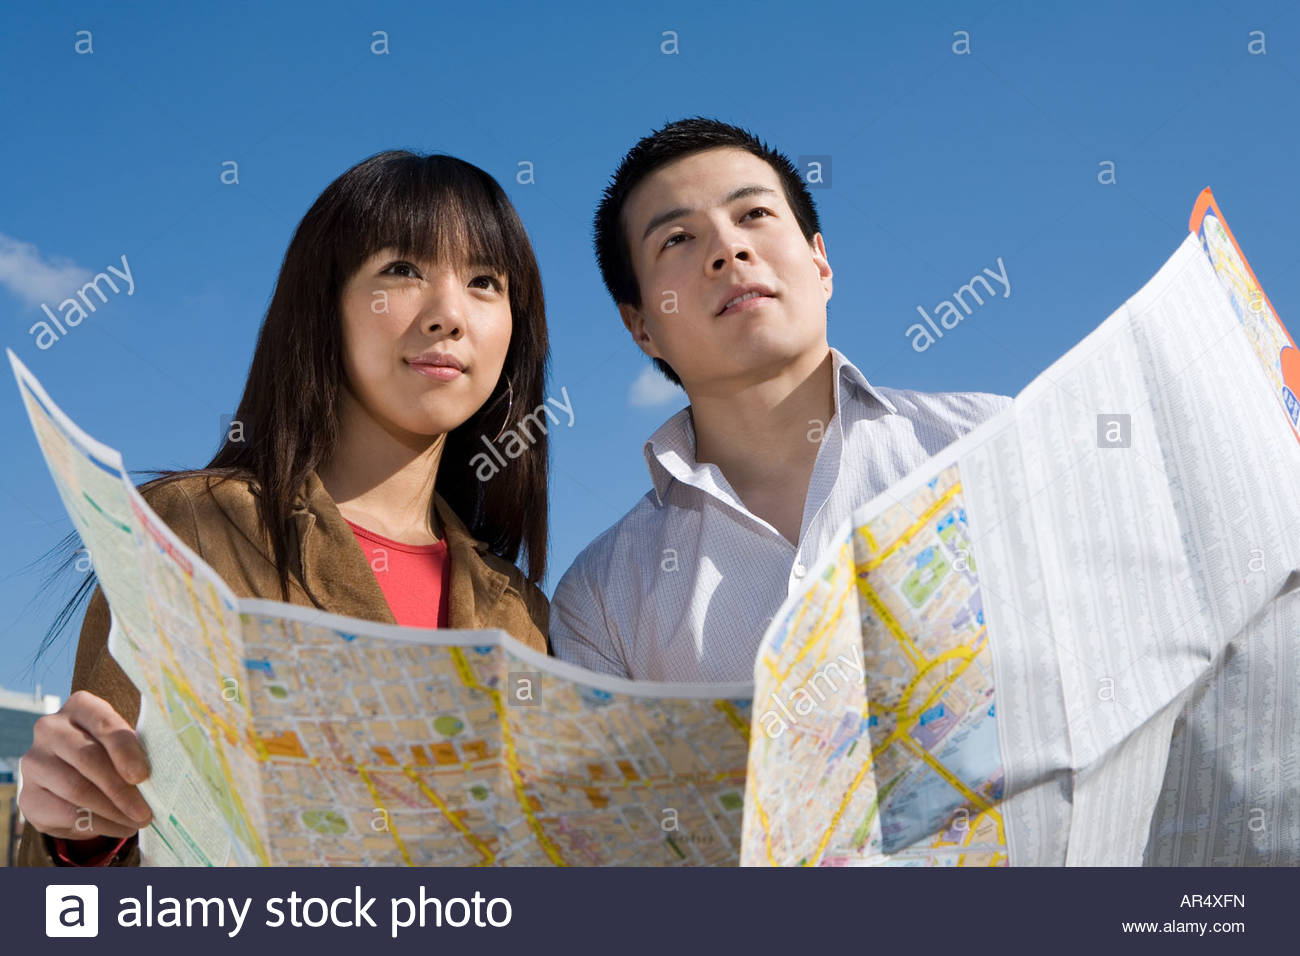 Couple with a map - Stock Image